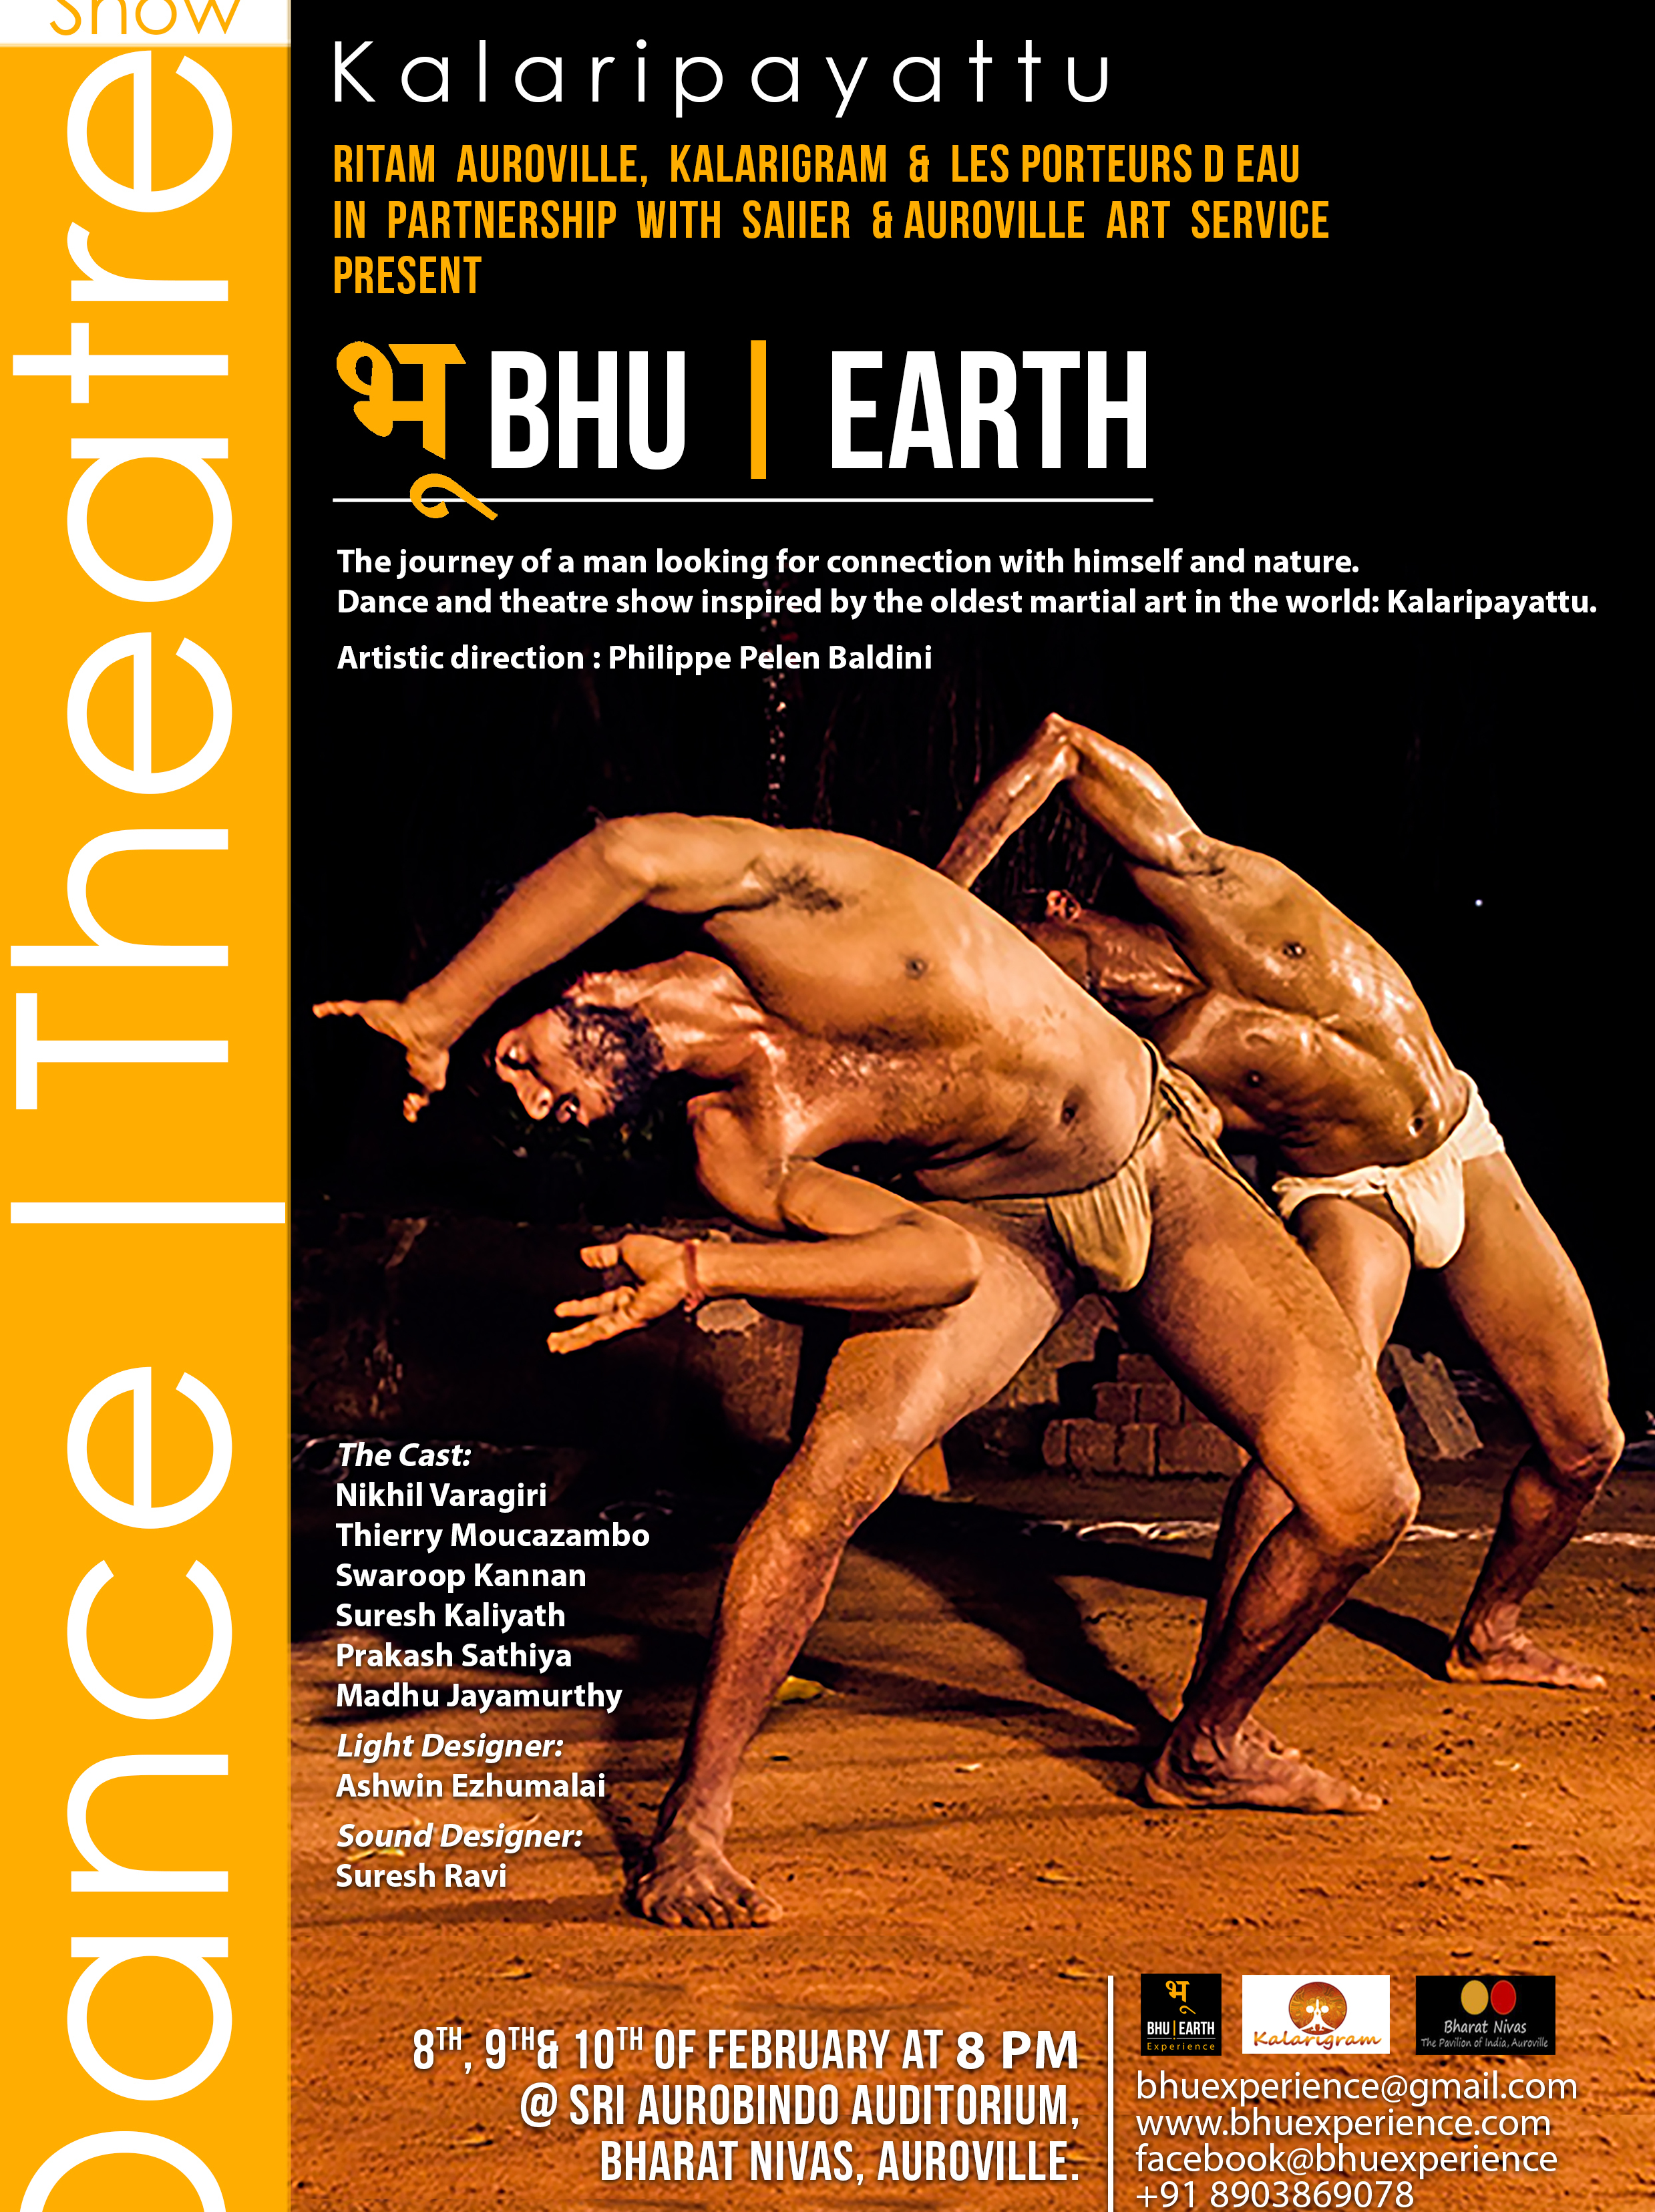 Photographer:web | Bhu/Earth on 8th, 9th and10th at 8pm at Bharat Nivas